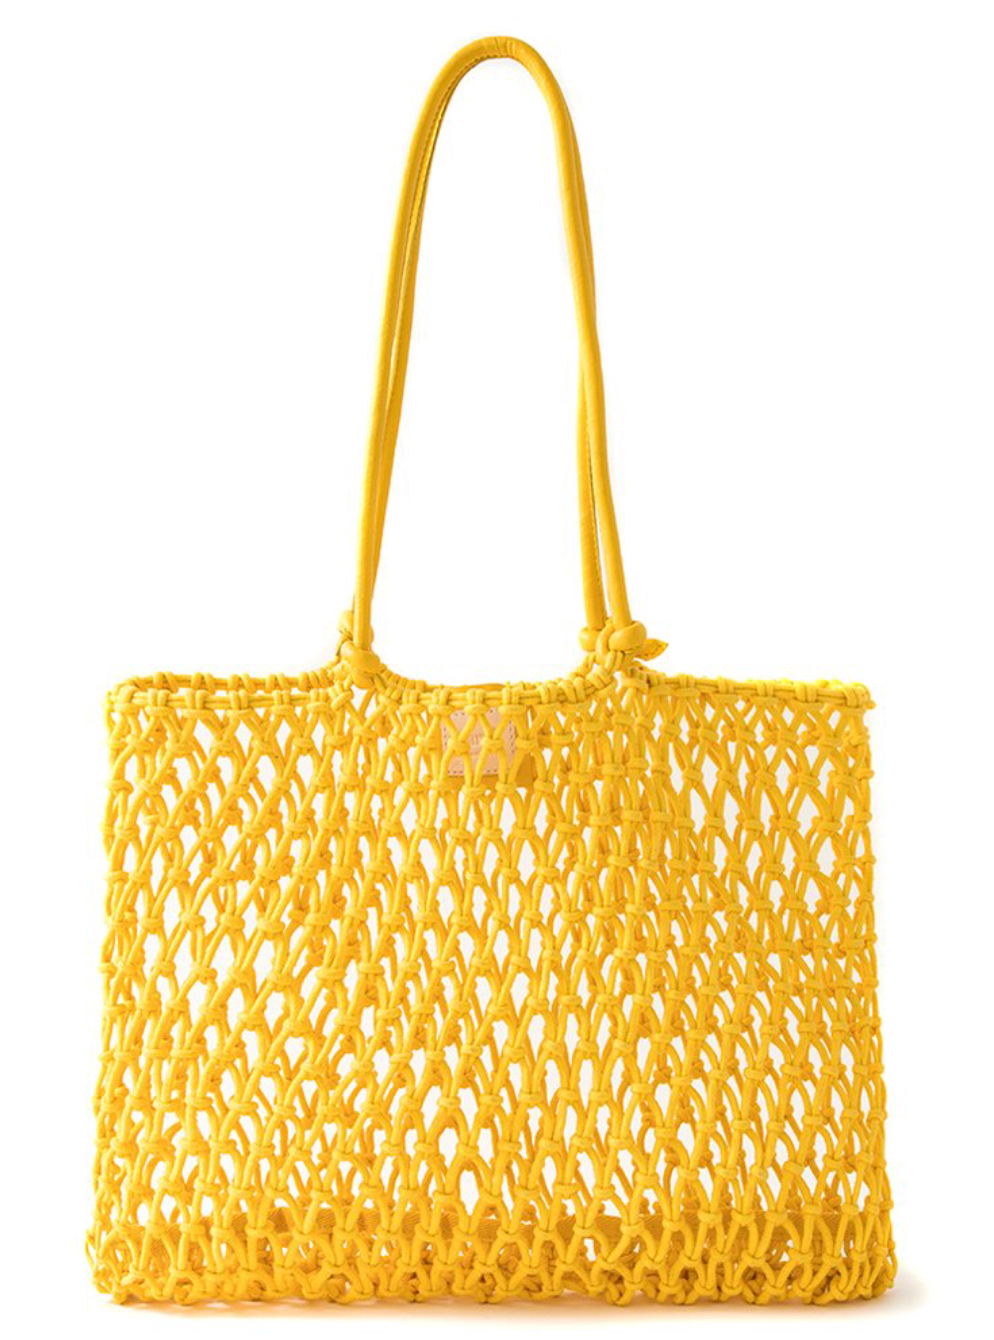 Clare Vivier Sandy Tote in Yellow